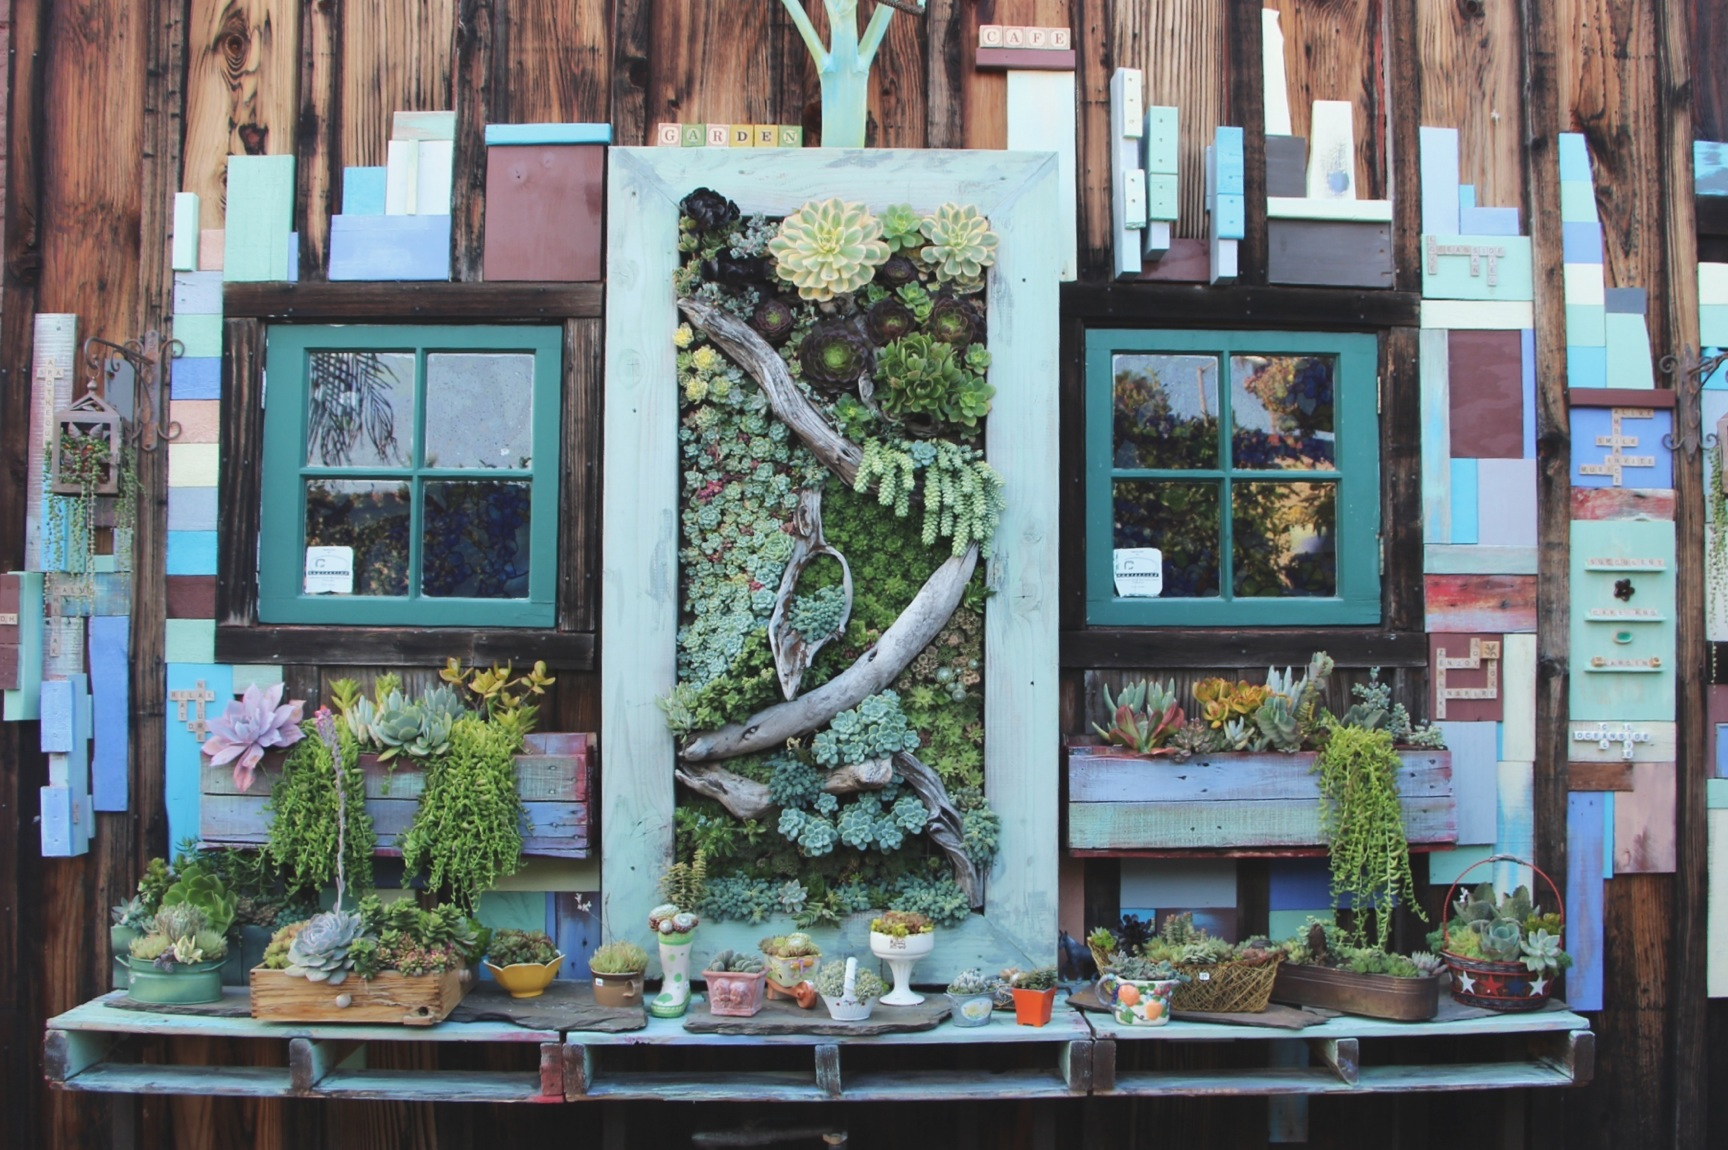 This vertical frame succulent wall was voted best plant art by San Diego Magazine, August 2013 issue.